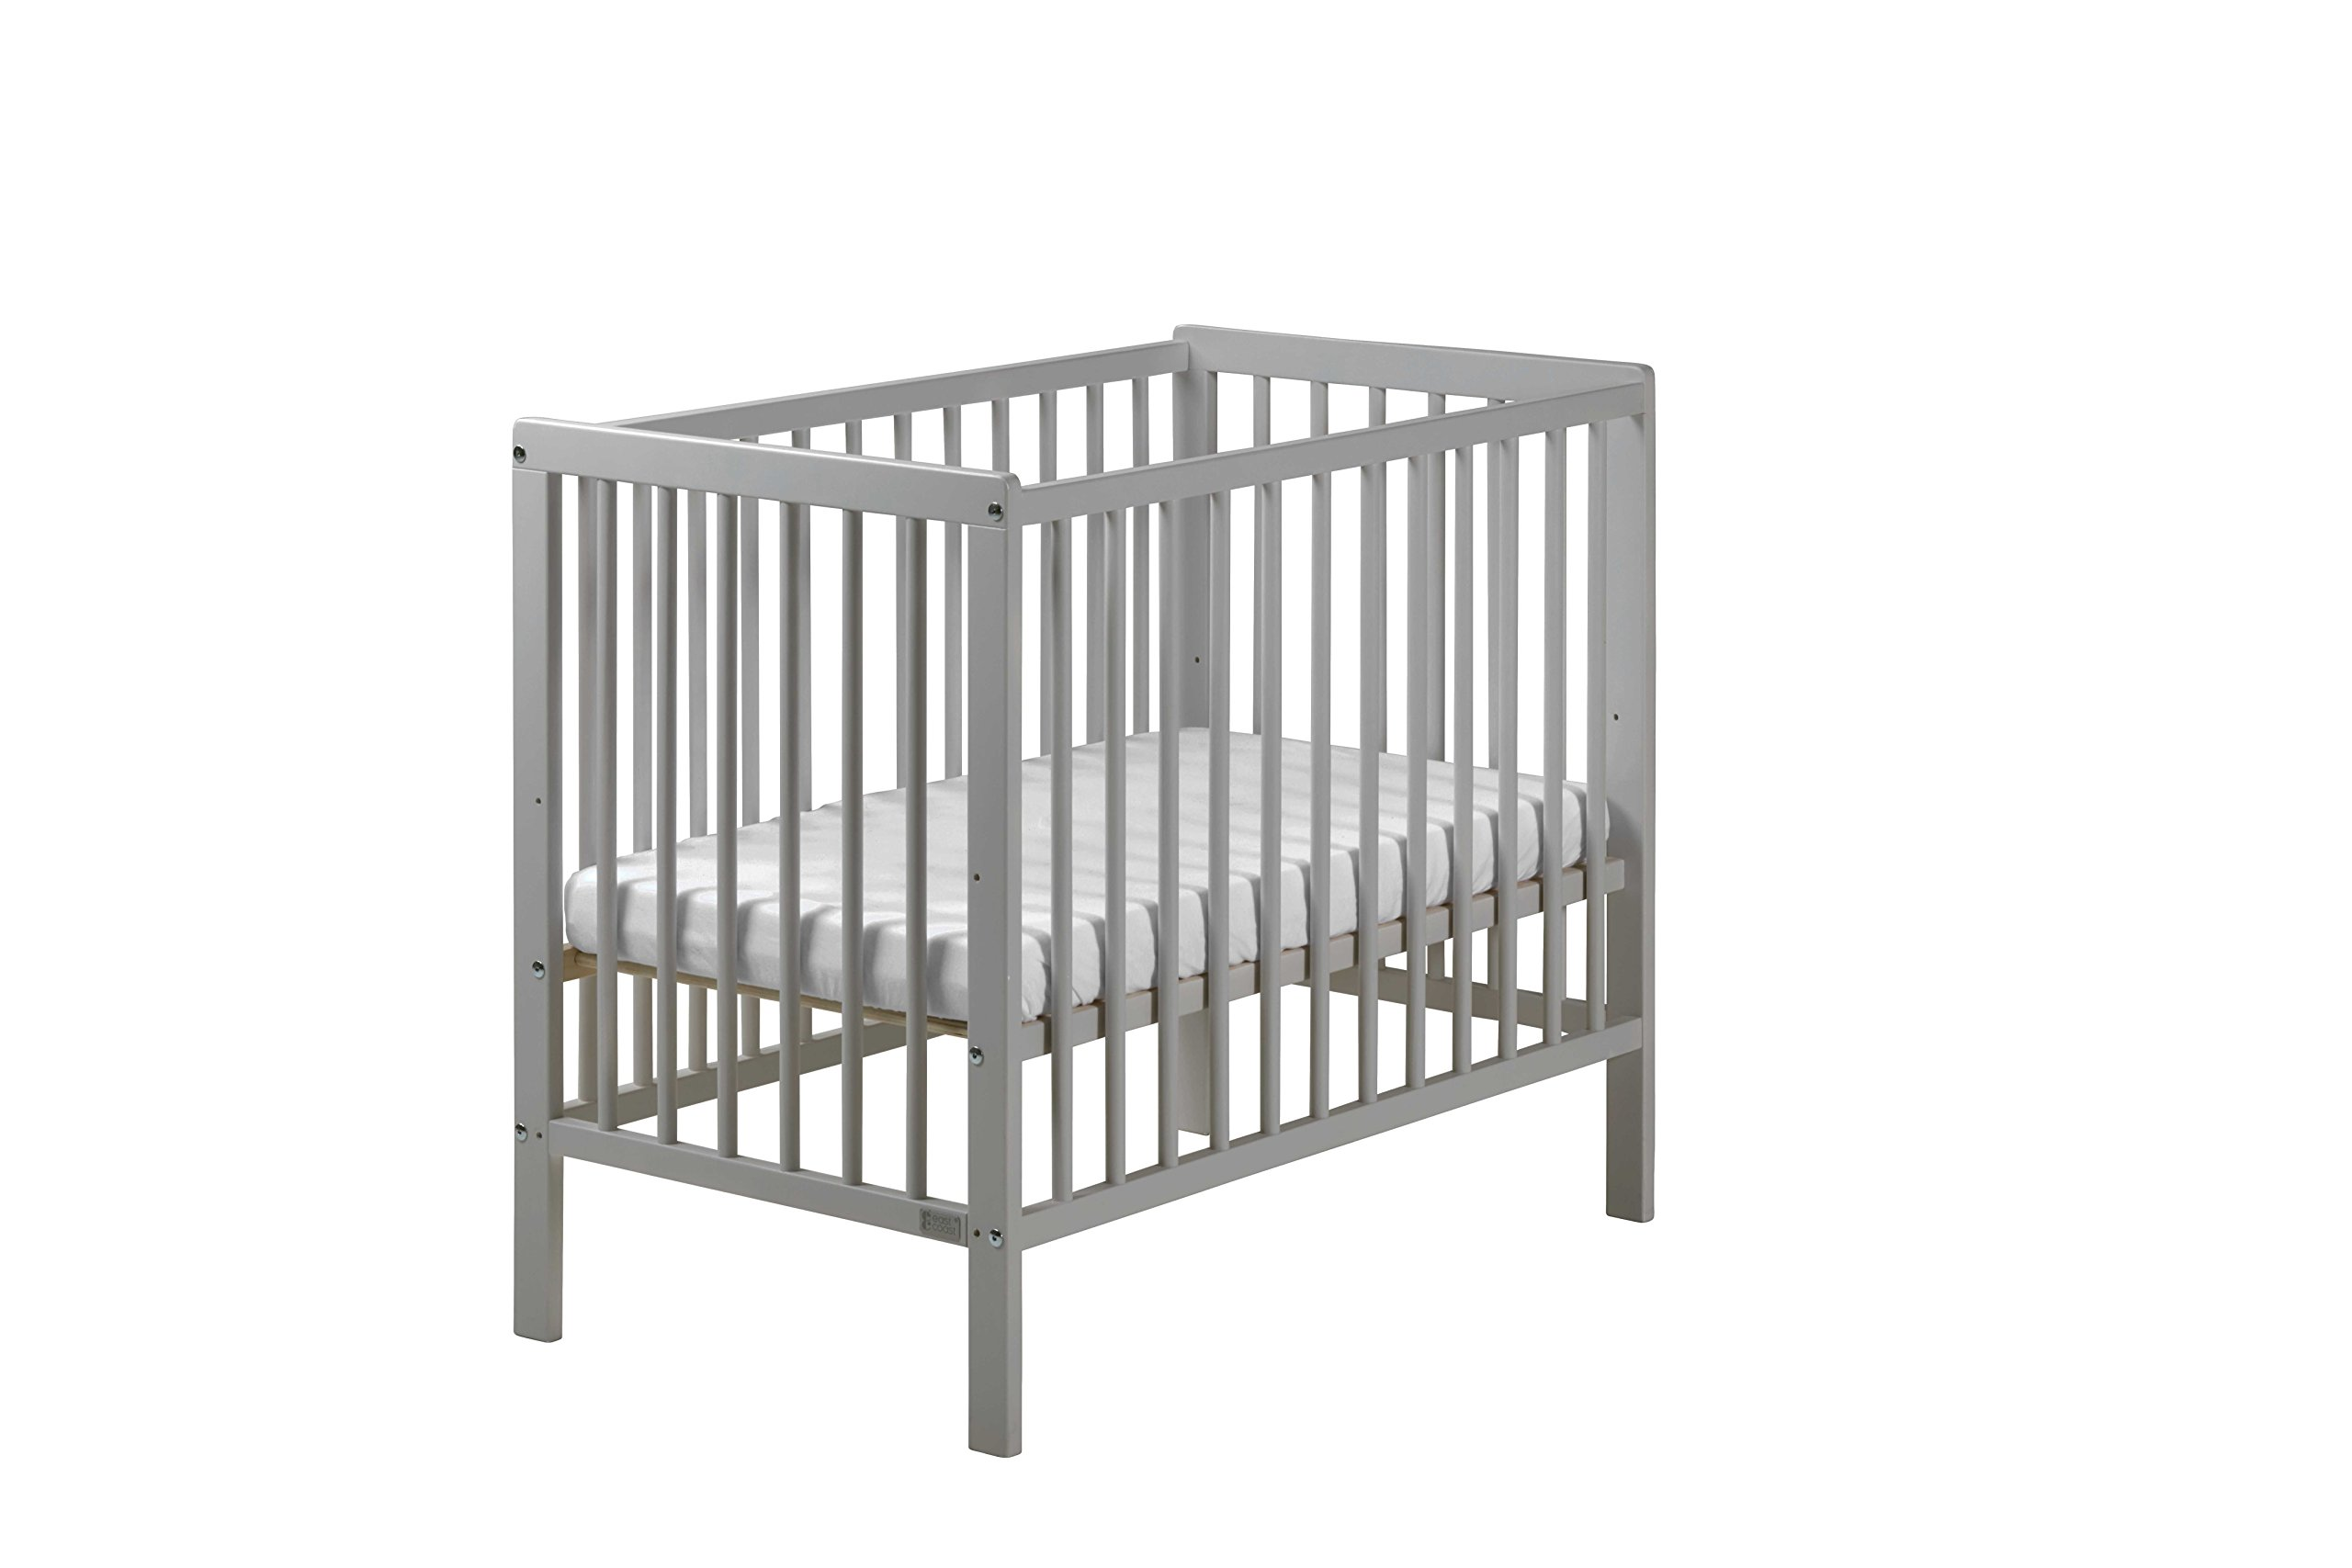 East Coast Carolina Space Saving Cot, Grey East Coast 3 base heights 2 fixed sides Foam mattress included 1